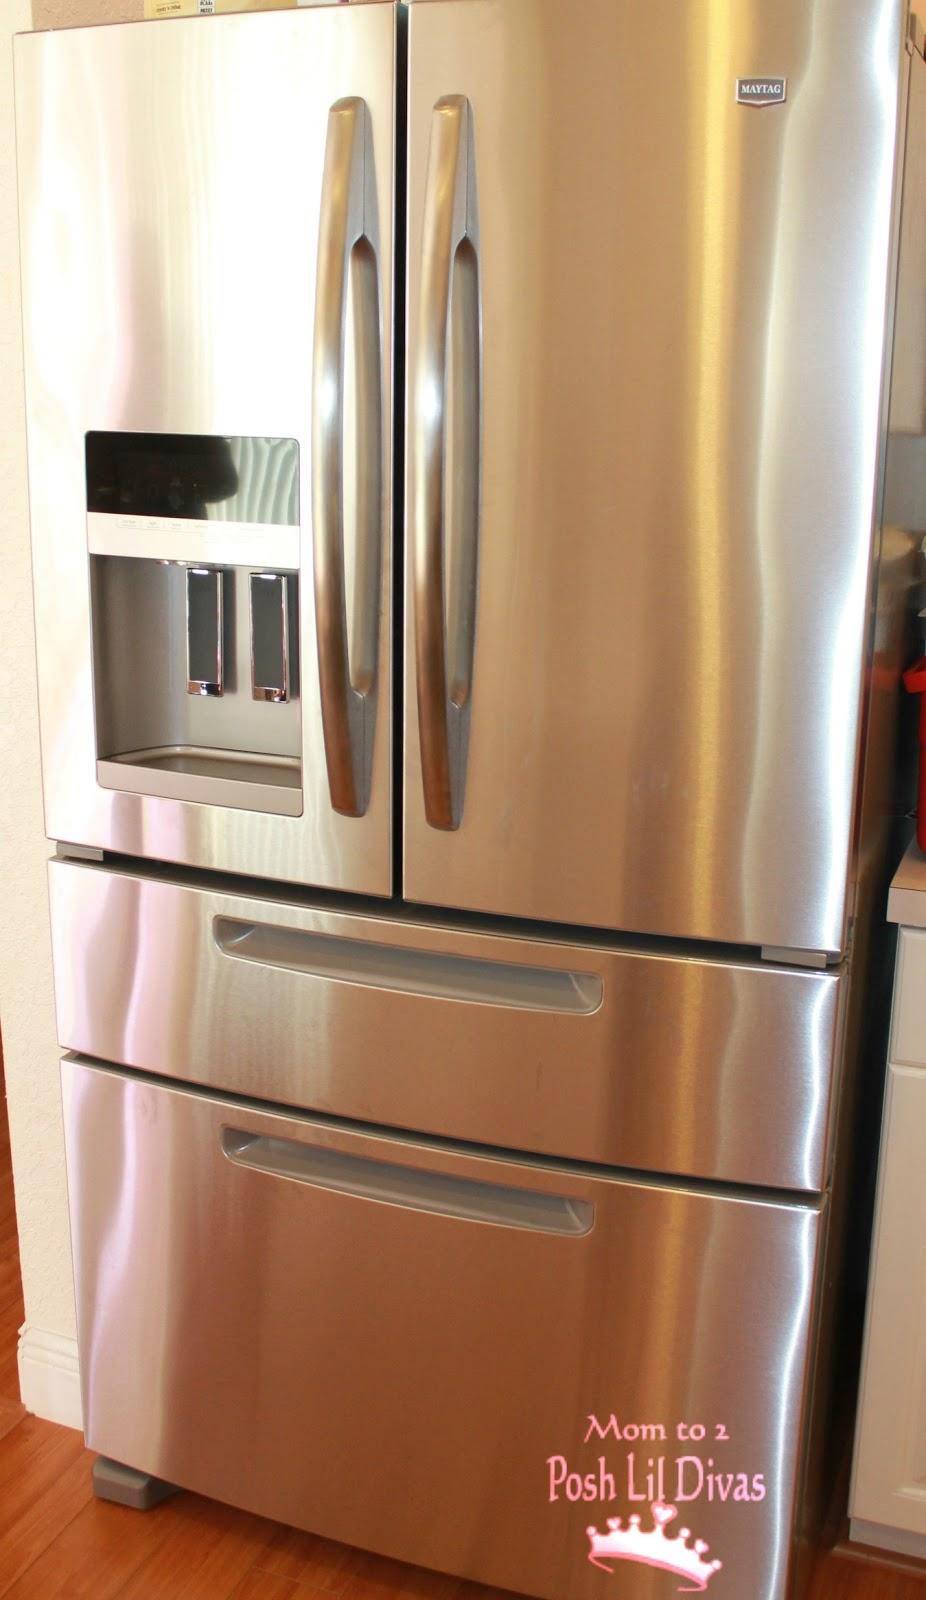 Maytag french door refrigerator reviews - Do You Love Your Refrigerator I Can Honestly Say That My Entire Family Loves Our Maytag Ice20 French Door Refrigerator